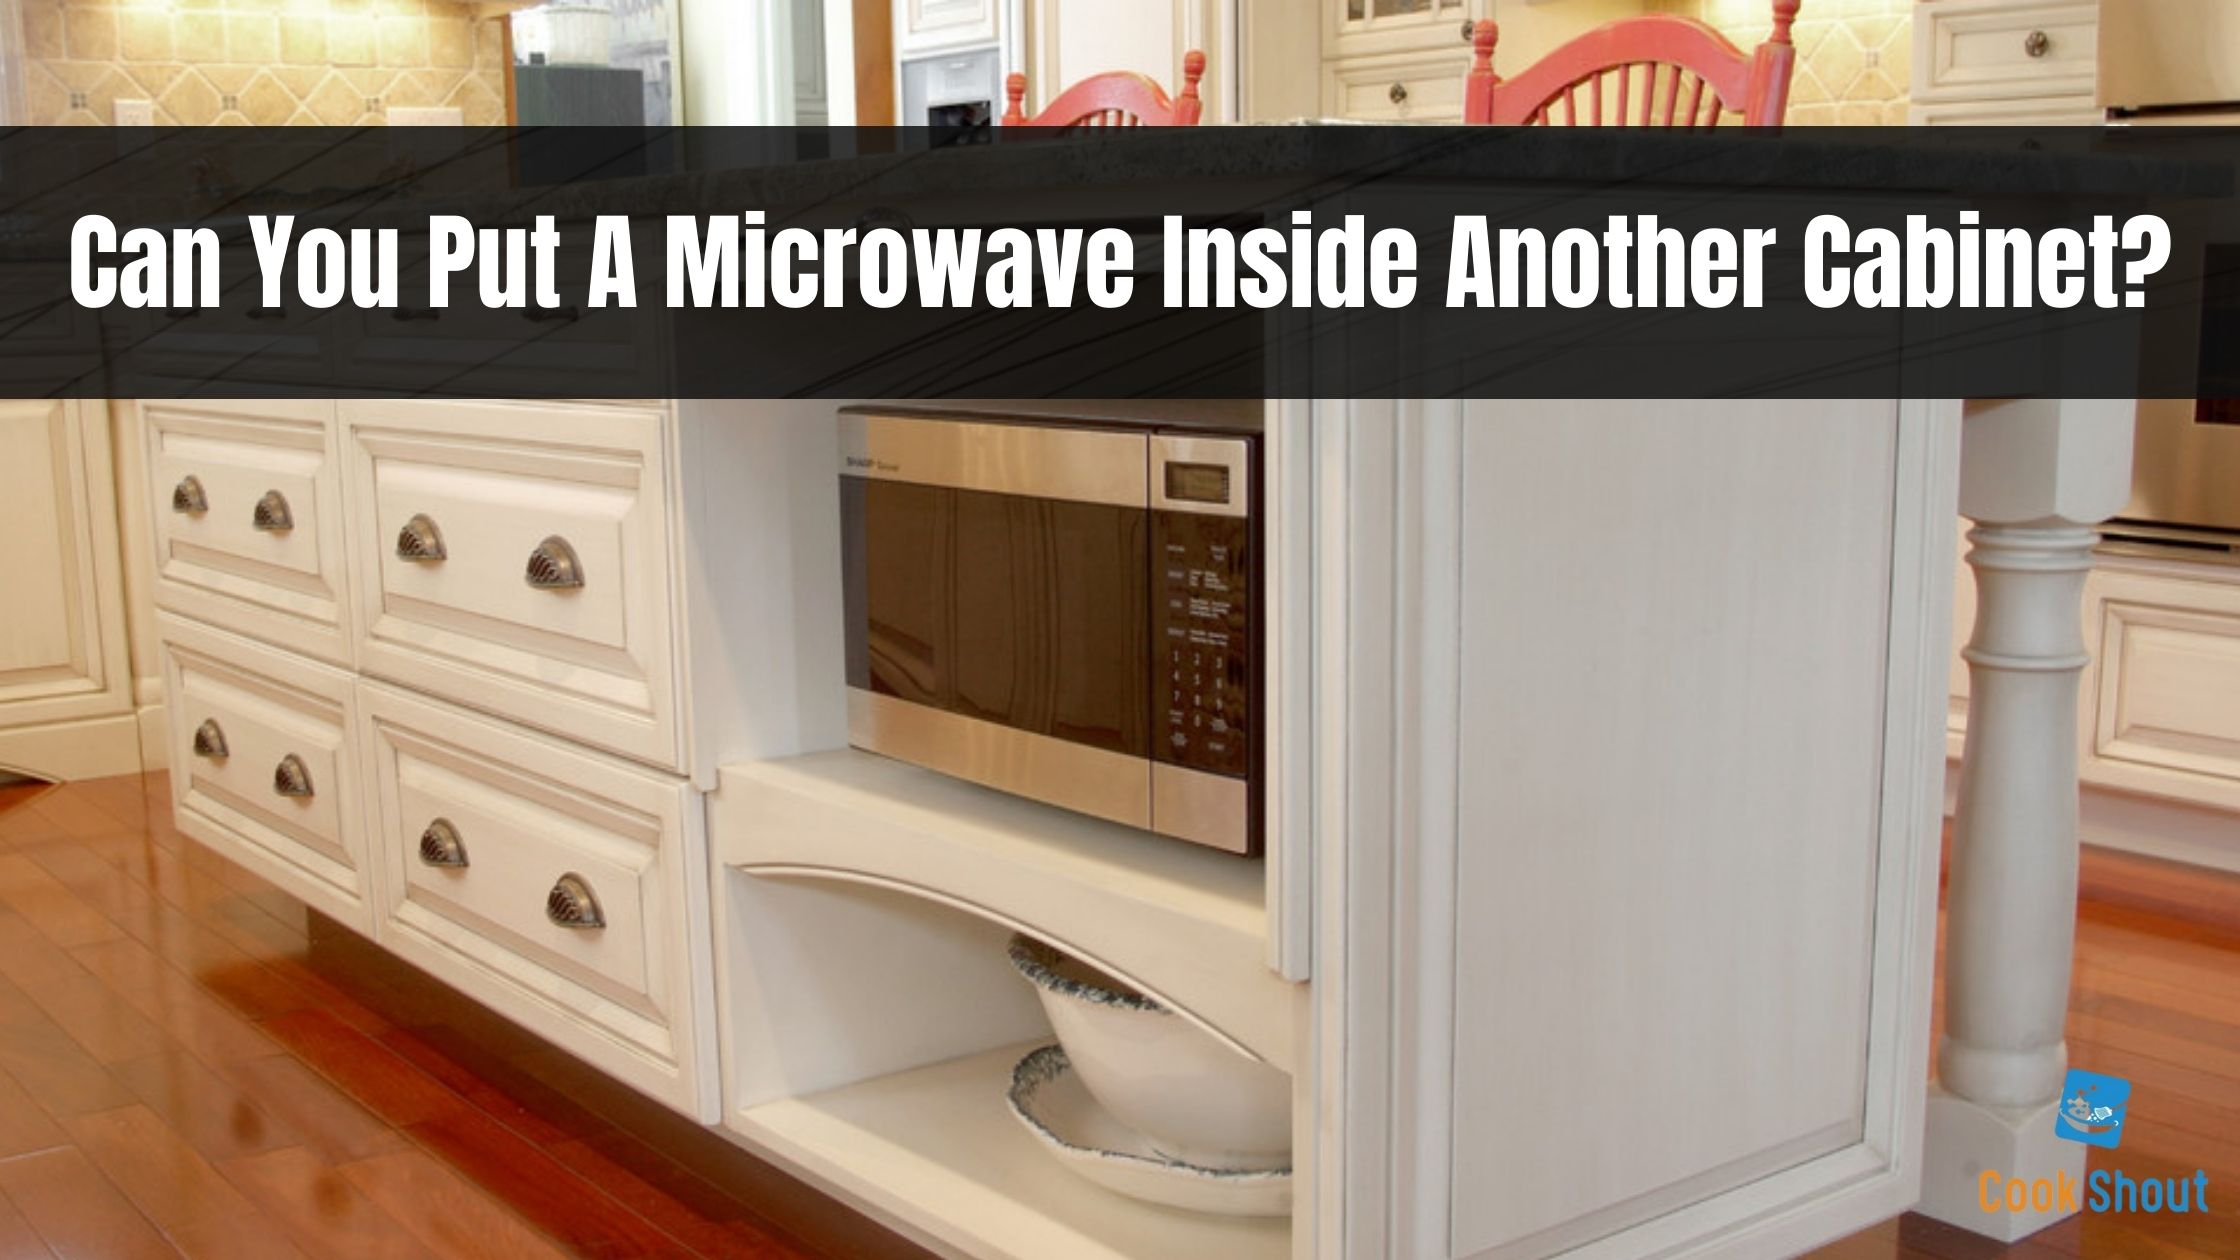 Can You Put A Microwave Inside Another Cabinet?